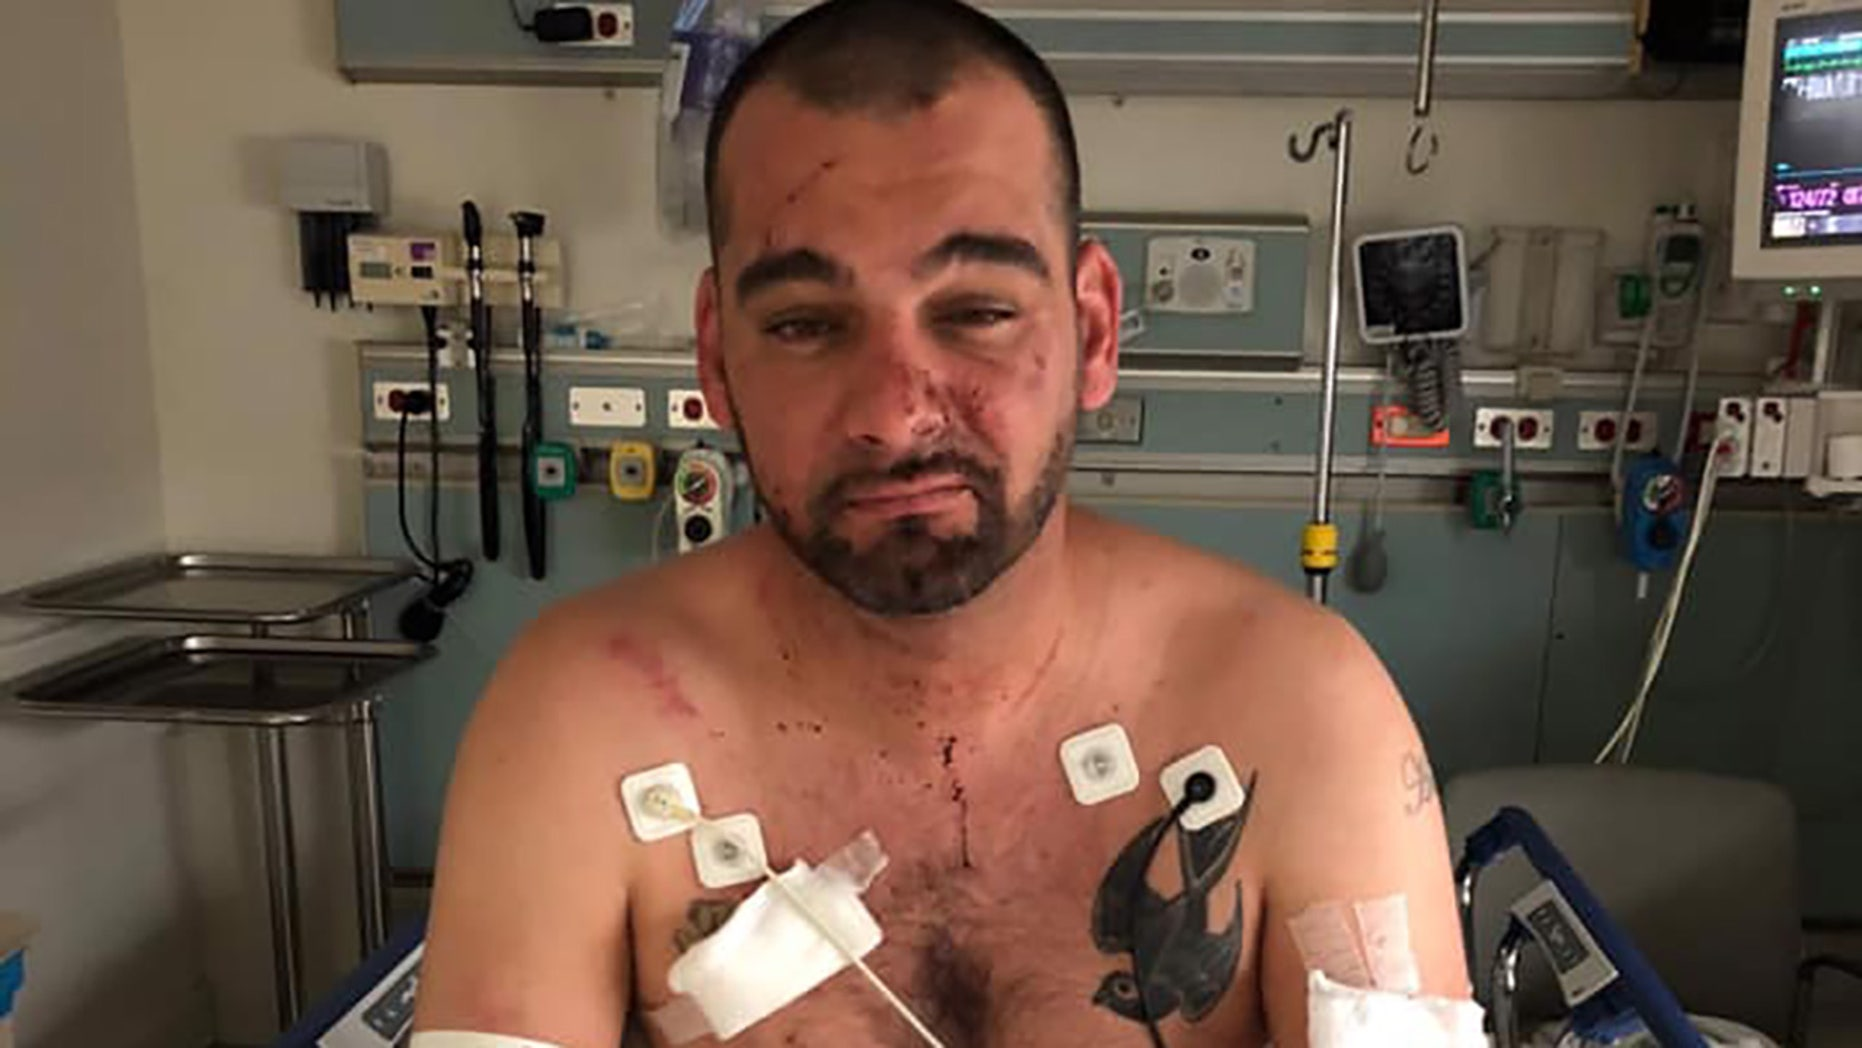 Josh Davis, a 36-year-old Red Sox fan, was brutally assaulted by whom he believes were a group of Dodgers fans after Boston won the World Series Sunday night in Los Angeles.